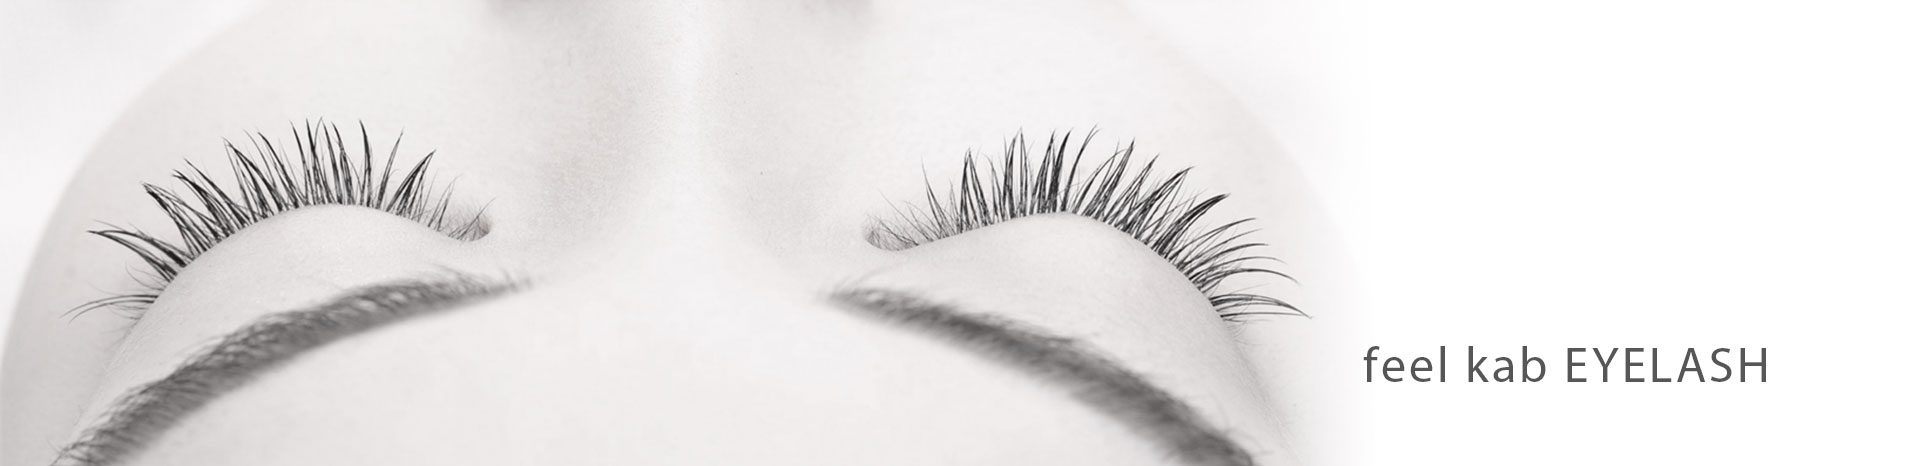 feel kab Eyelash